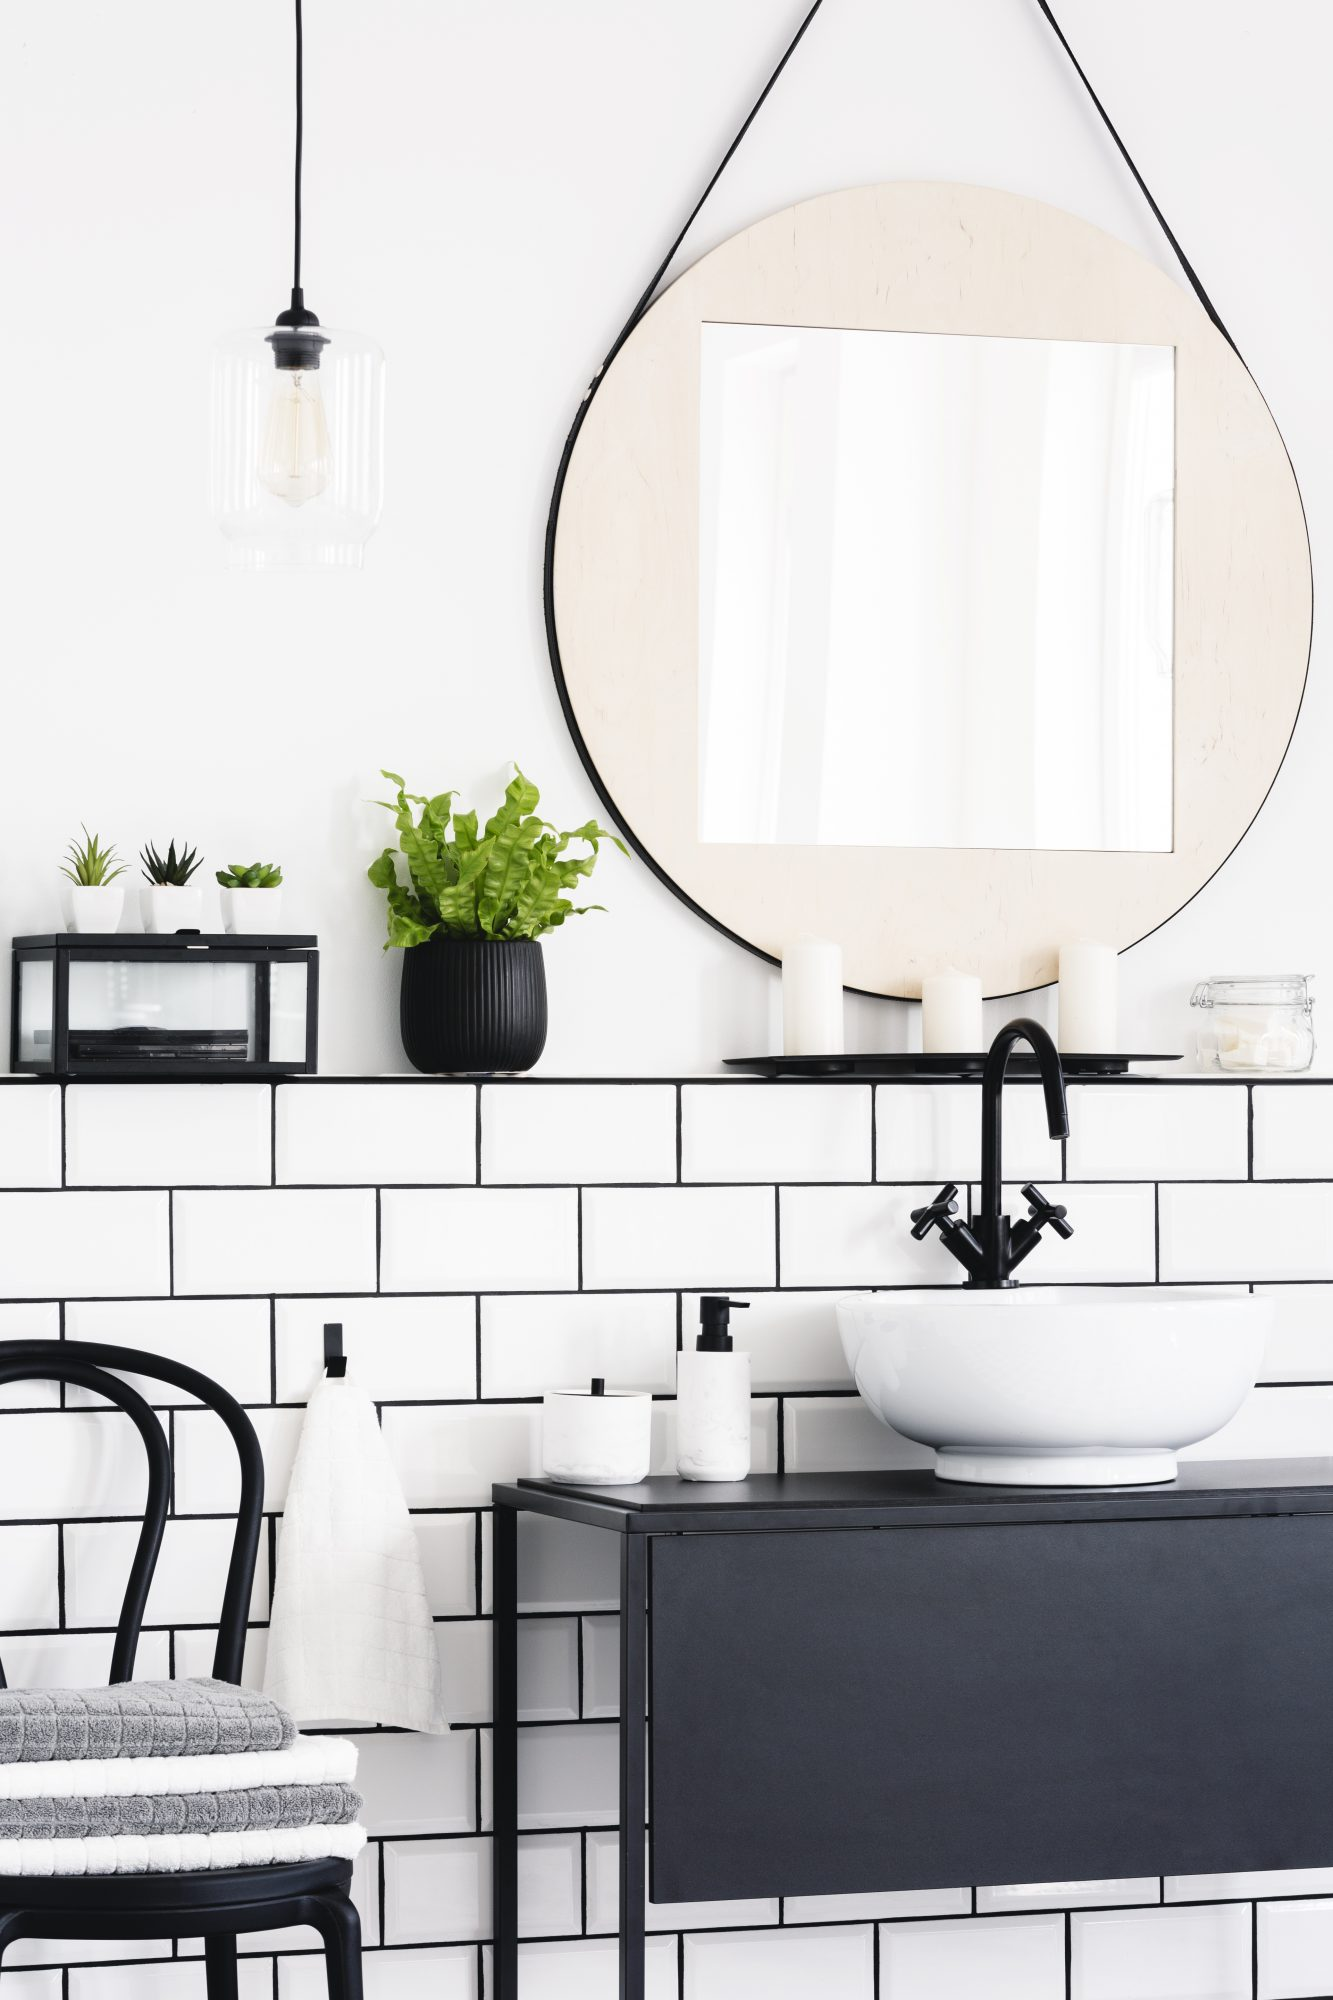 toilet interior with a mirror, plant, chair and black cupboard